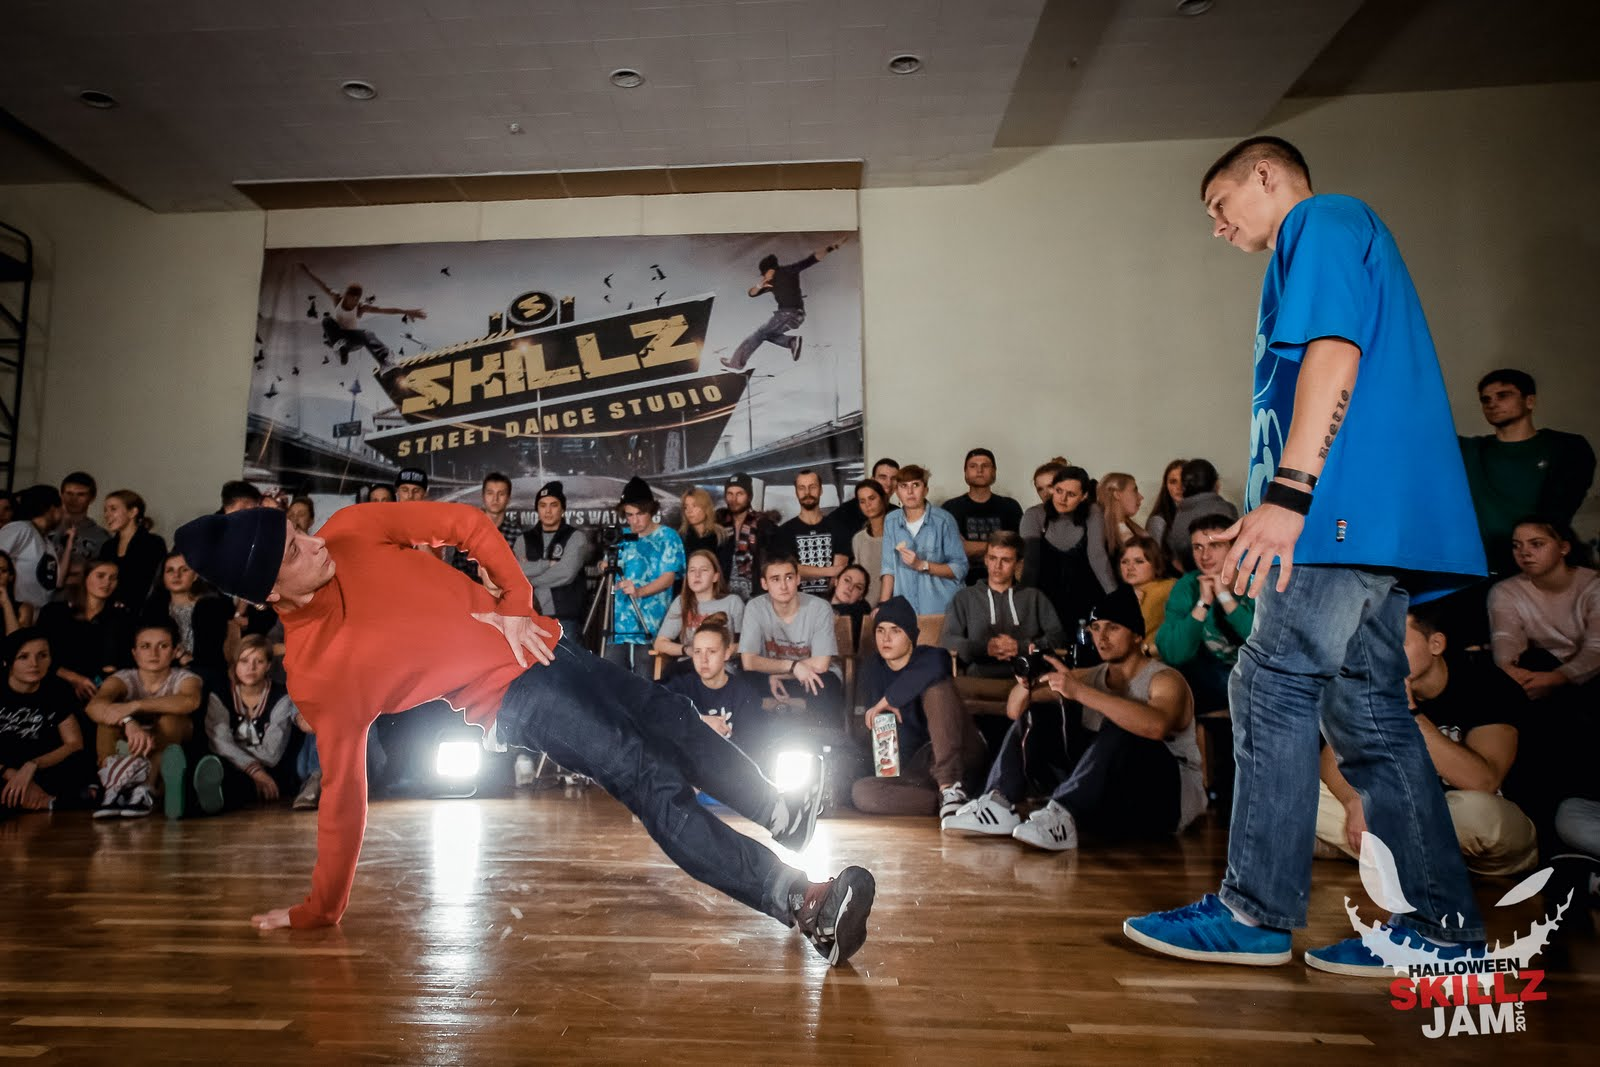 SKILLZ Halloween Jam Battles - a_MG_2475.jpg